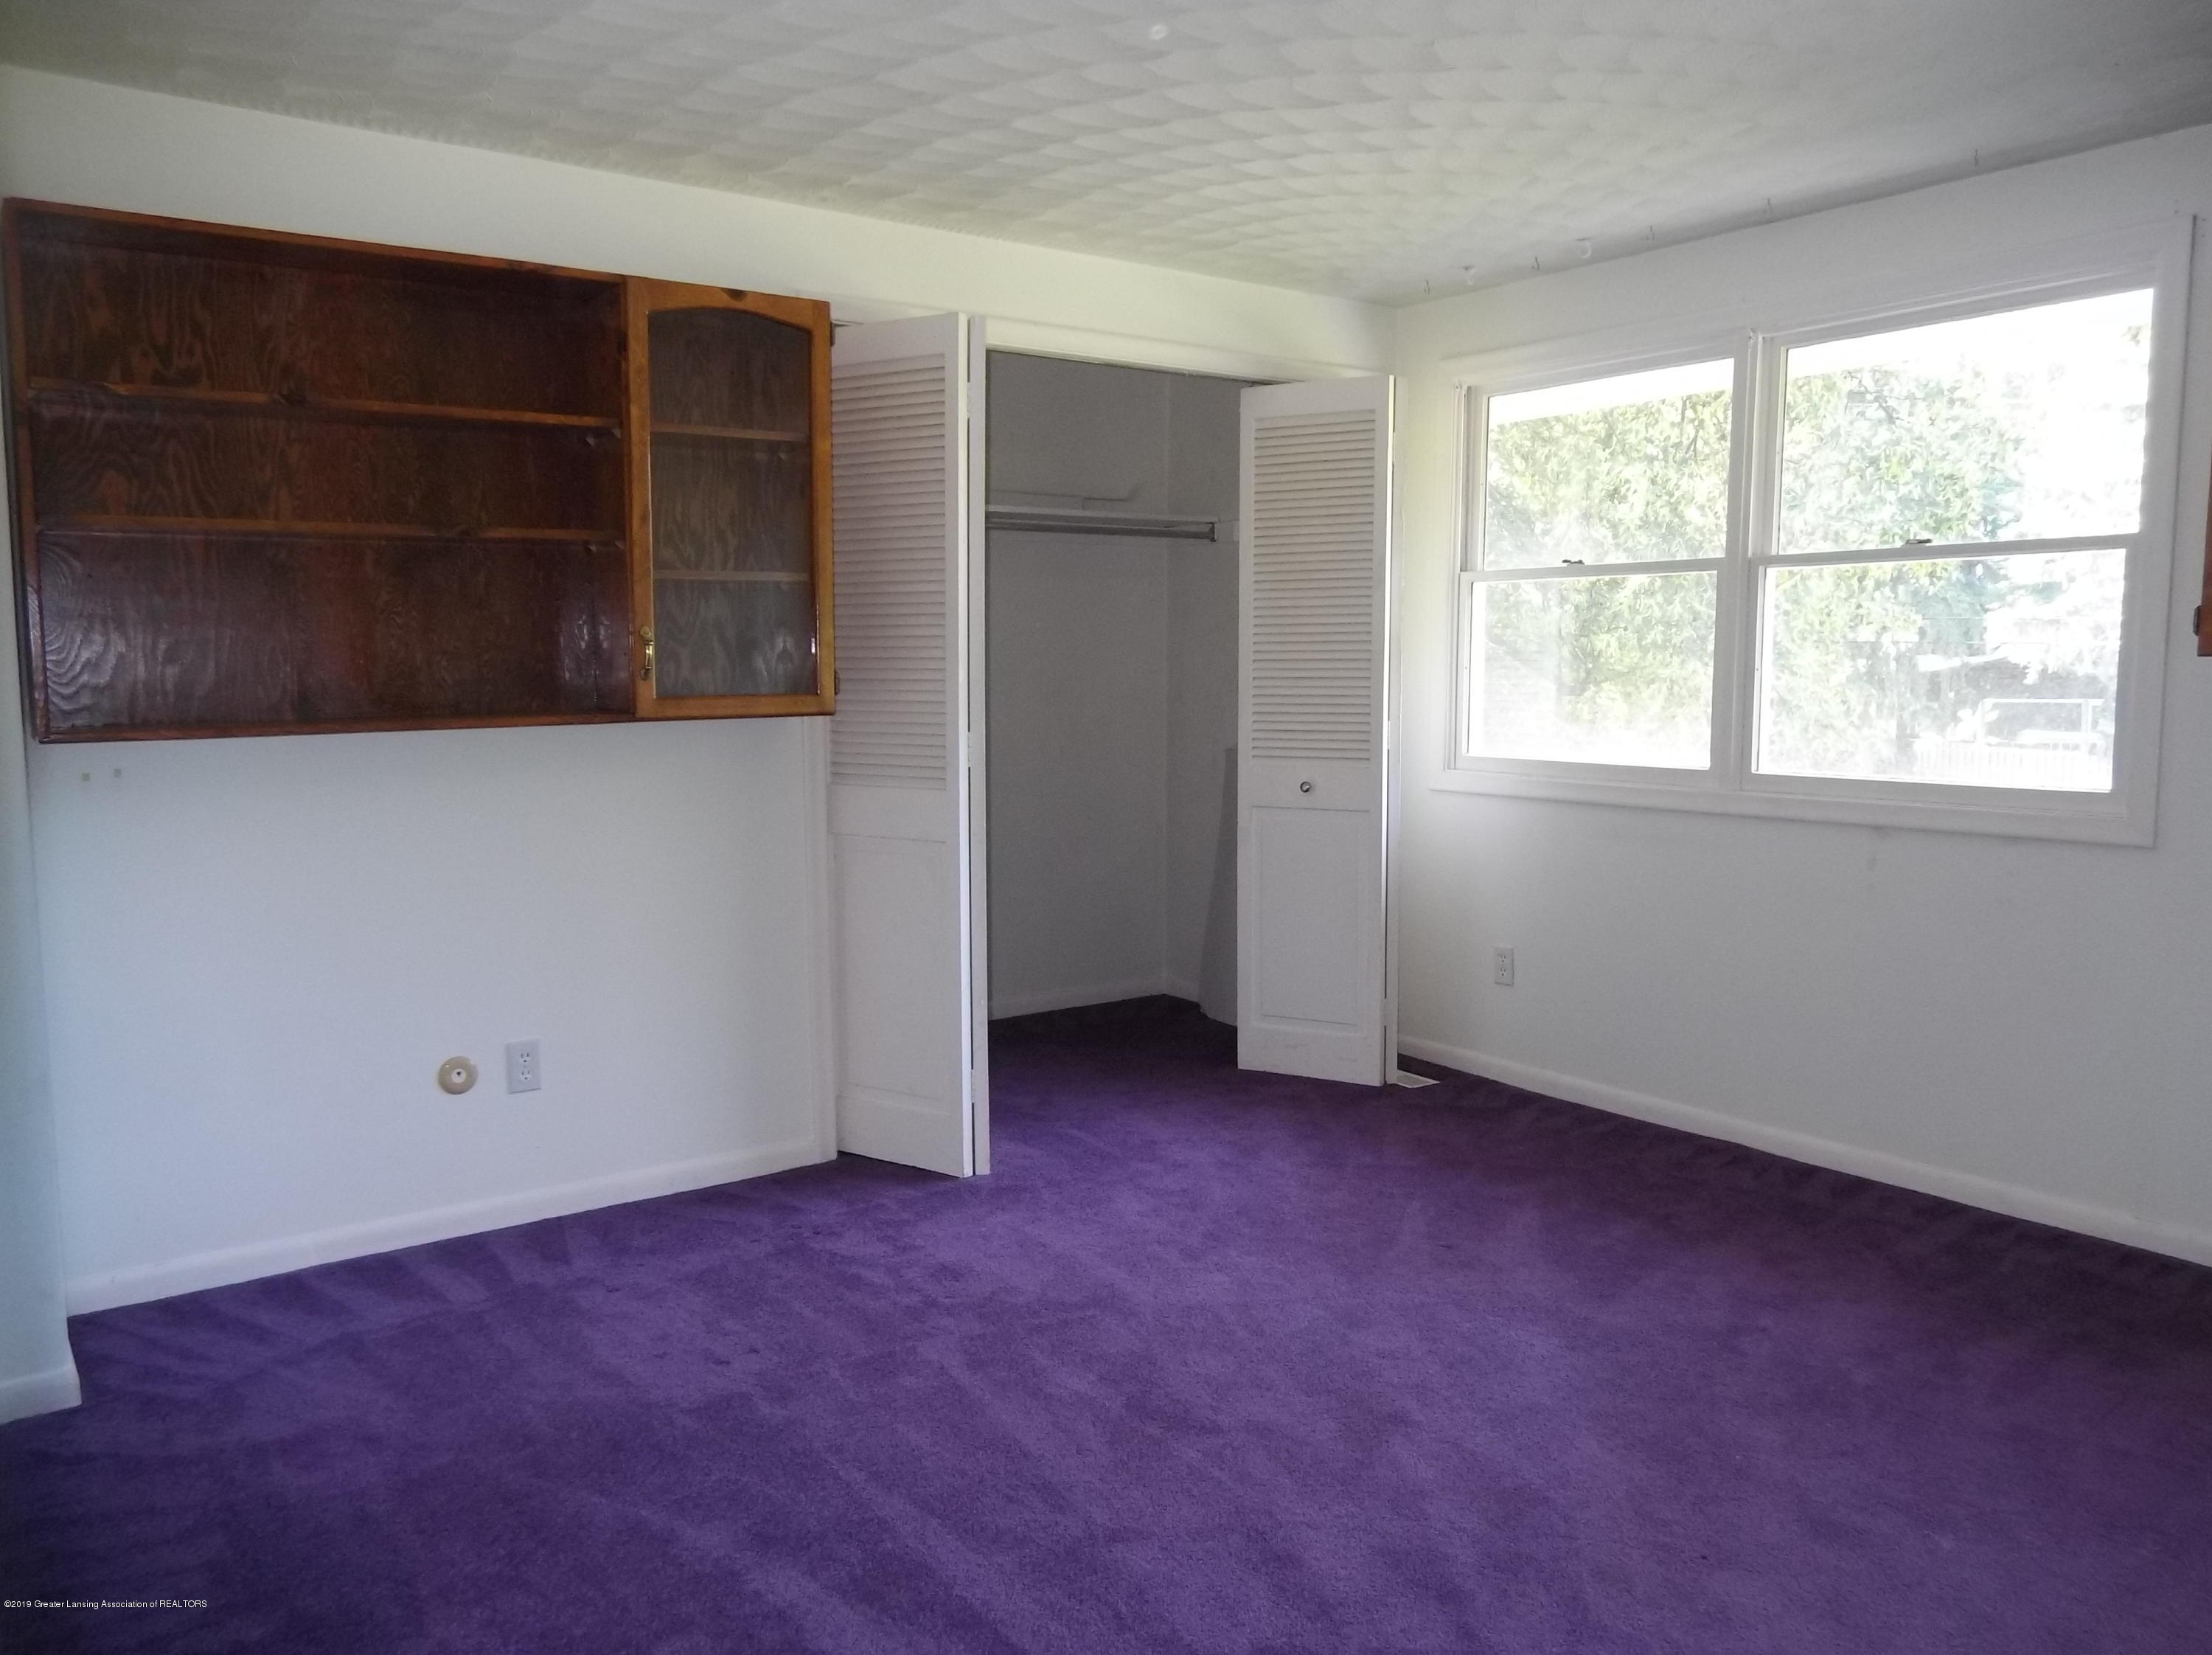 2971 Briarcliff Dr - Bedroom - 14